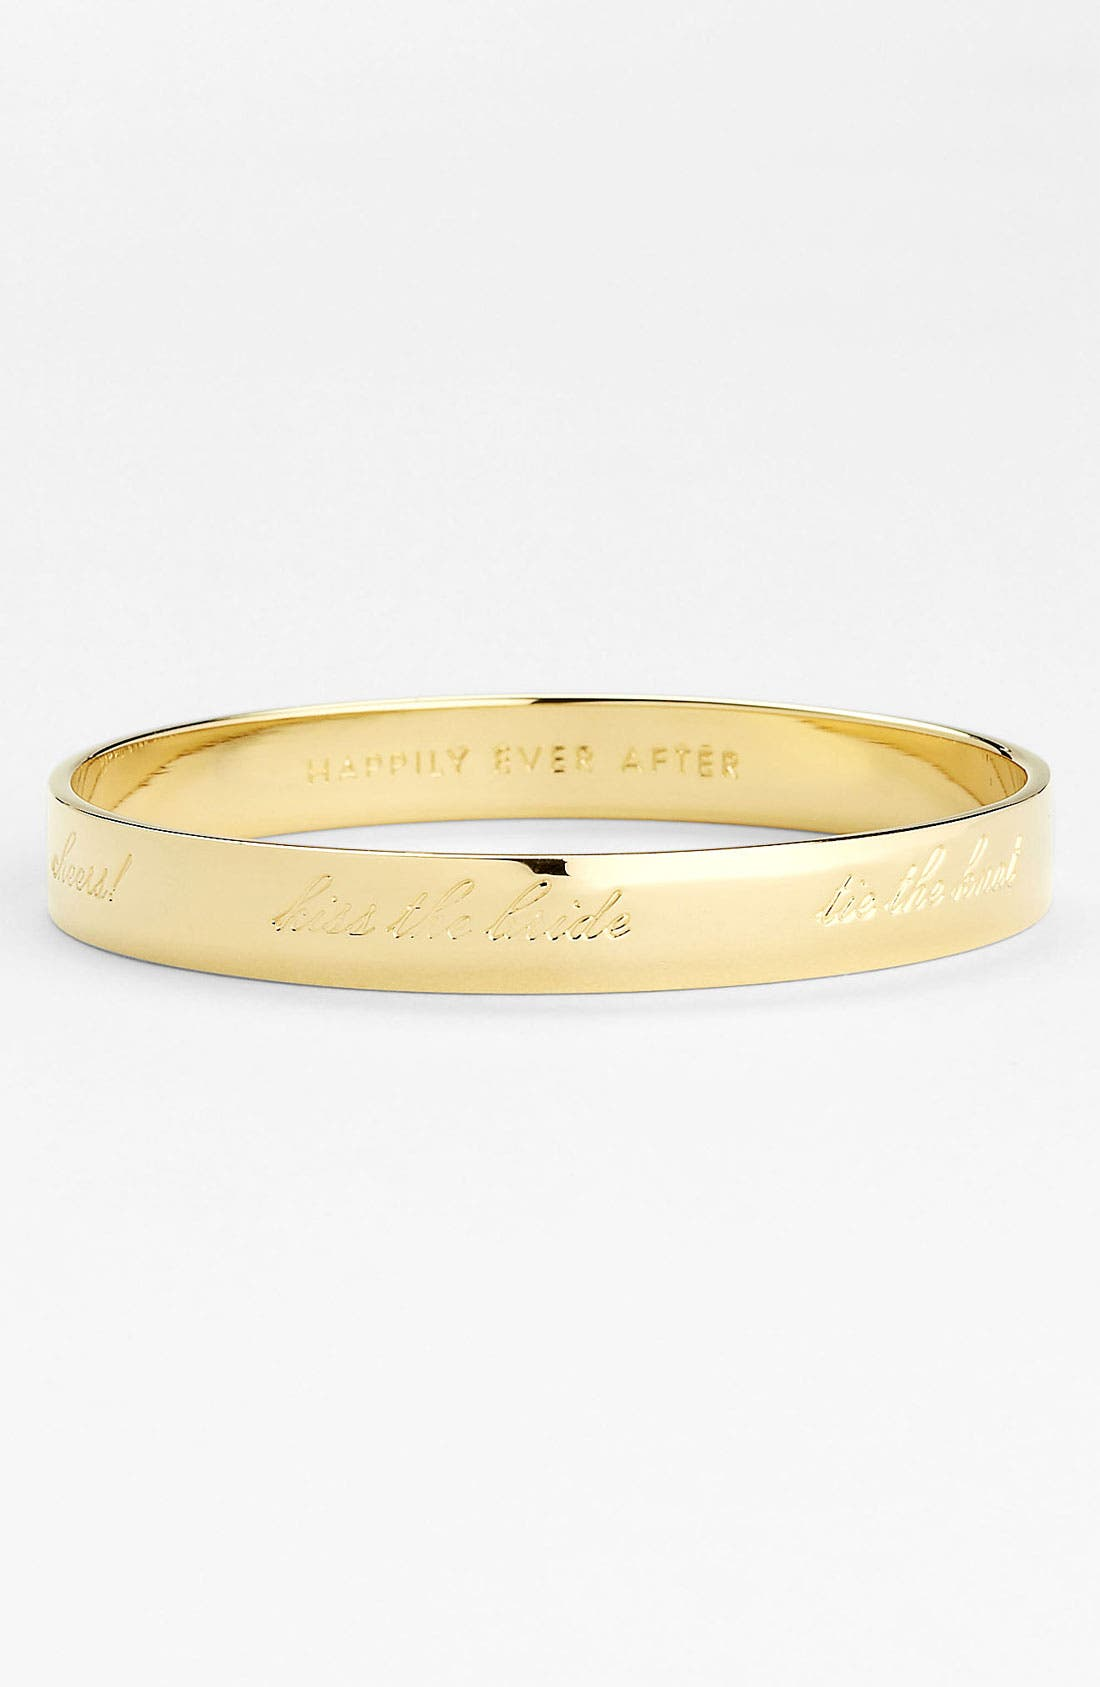 Main Image - kate spade new york 'idiom - happily ever after' bangle